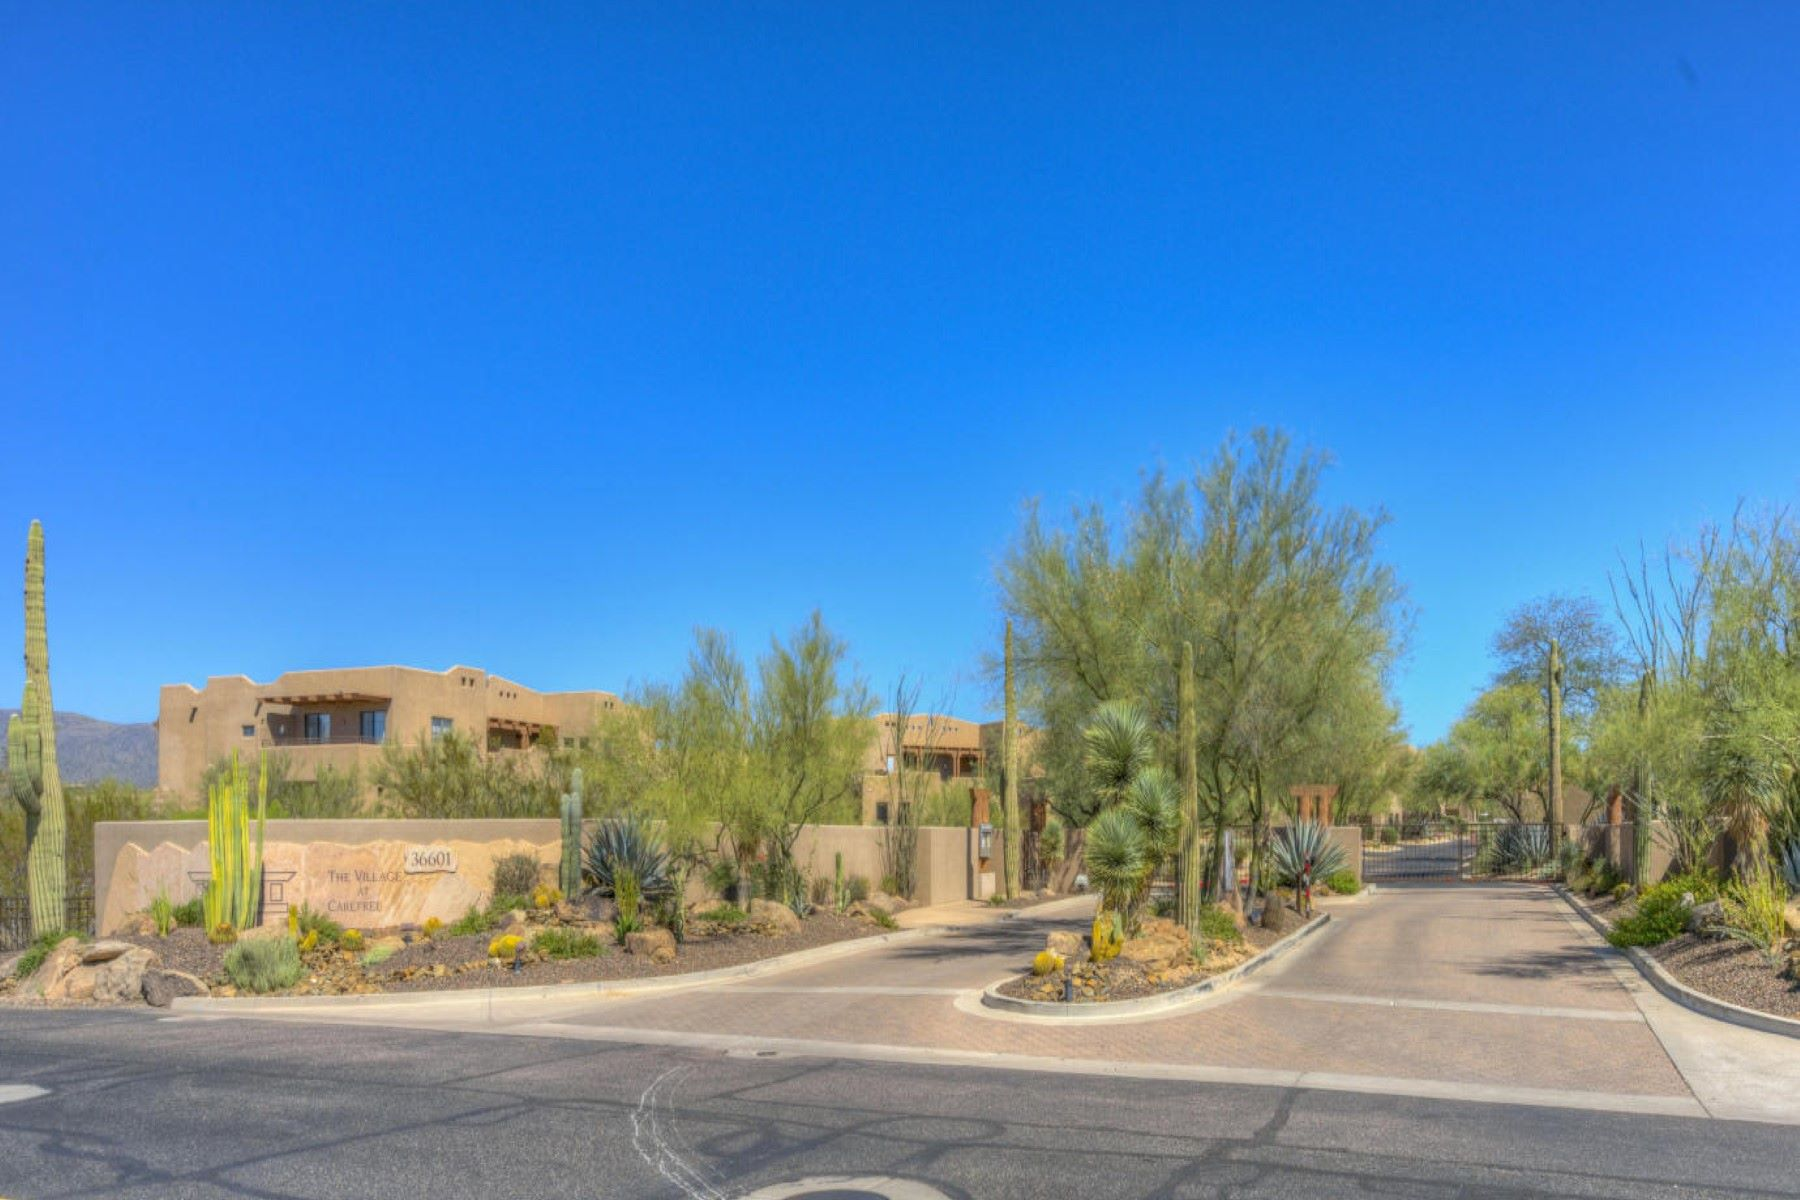 Single Family Home for Sale at Fully furnished Gorgeous Townhome in the Heart of Carefree 36601 N Mule Train Rd B26 Carefree, Arizona, 85377 United States